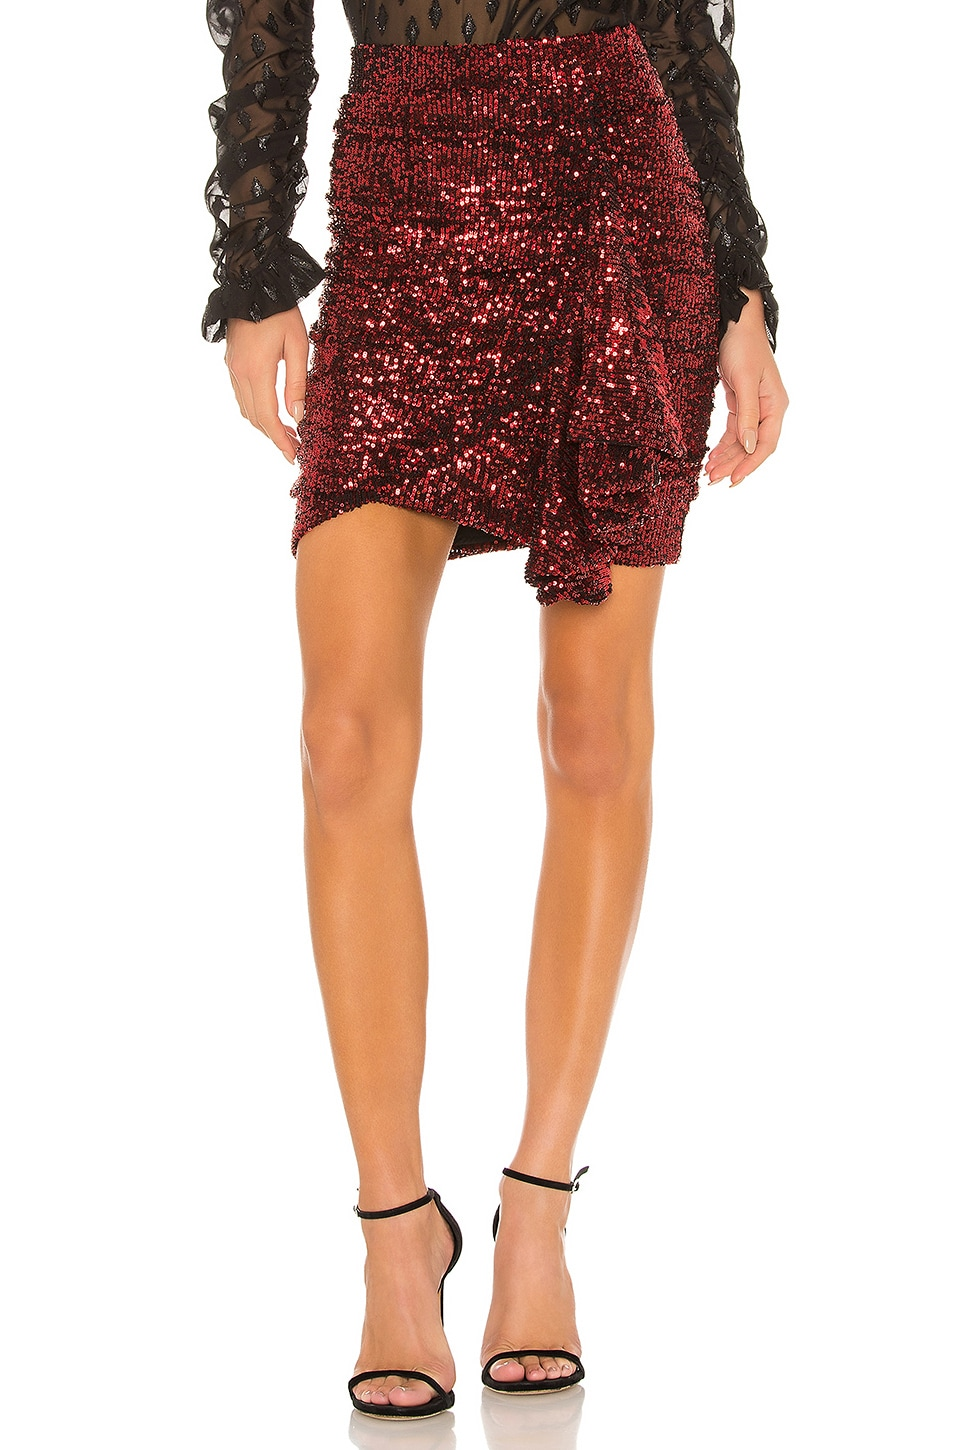 IORANE lORANE Sequin Mini Skirt in Red